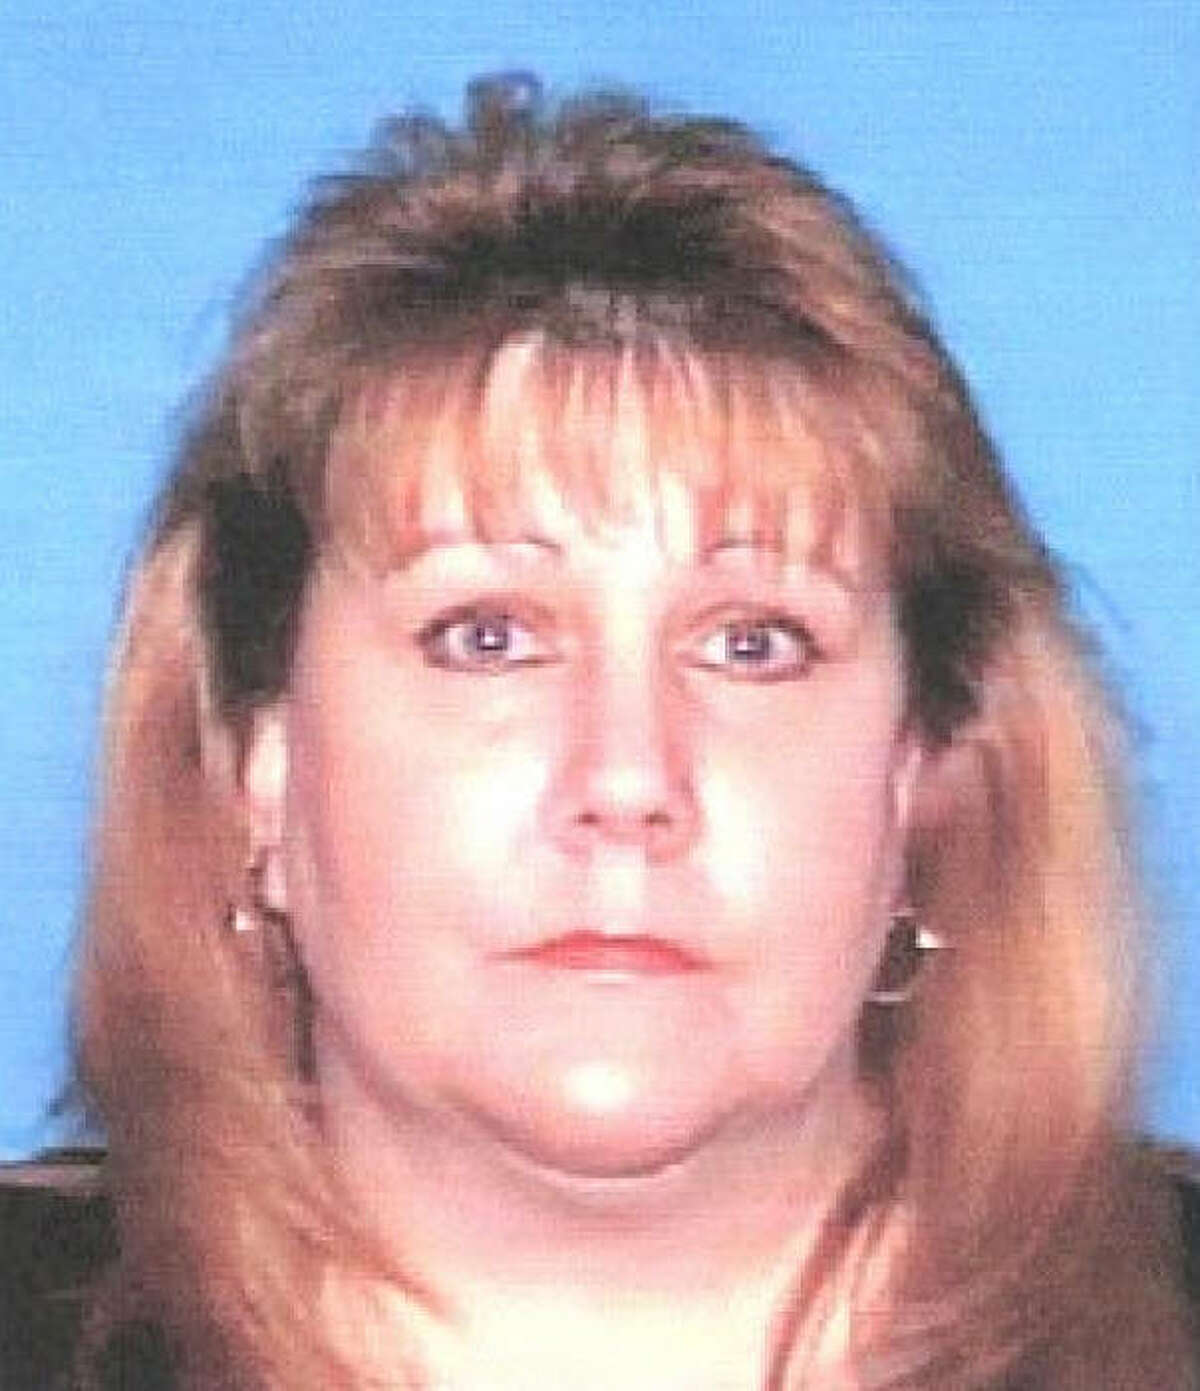 Colleen Waterman of Indian Wells (Riverside County), found slain in a motel room on San Francisco's Lombard Street on Friday.